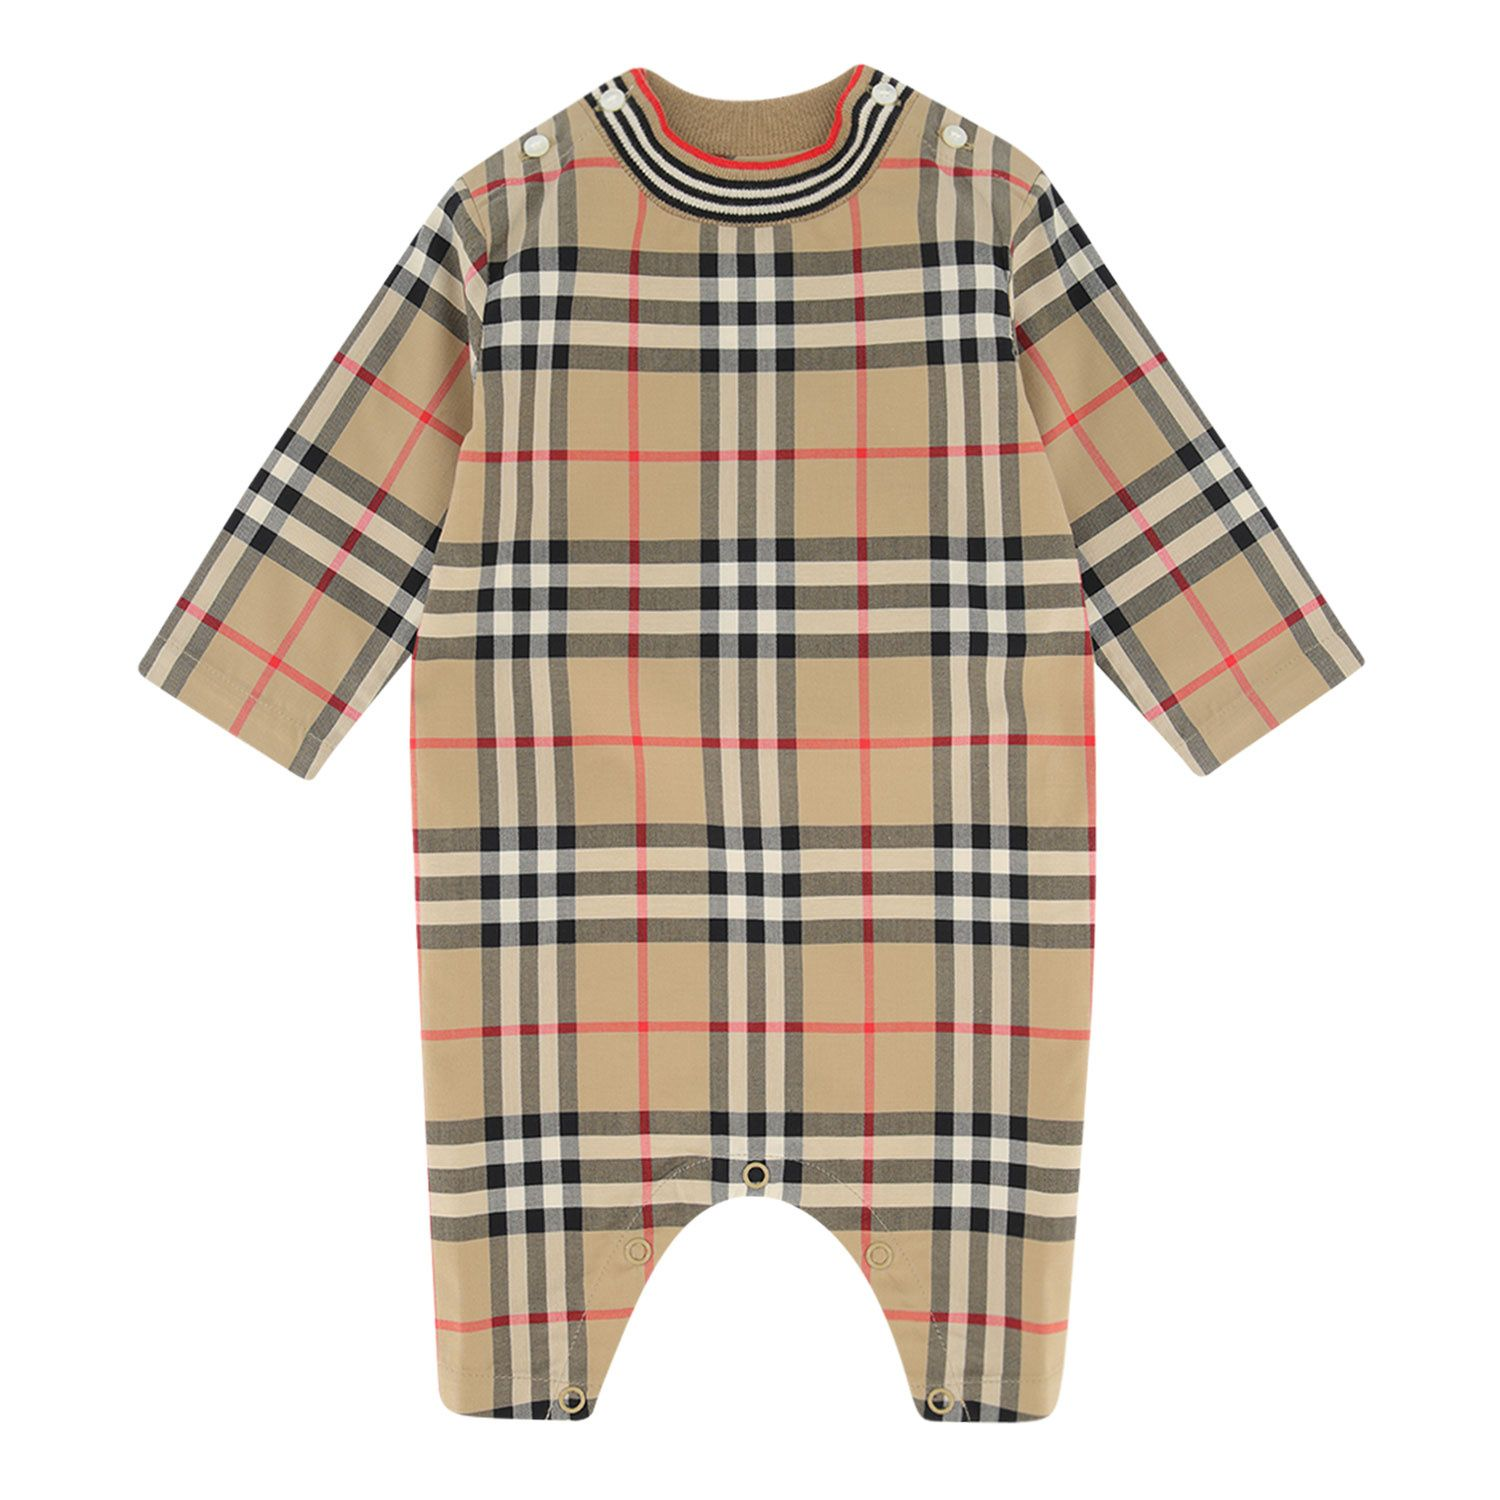 Picture of Burberry 8036579 baby playsuit beige